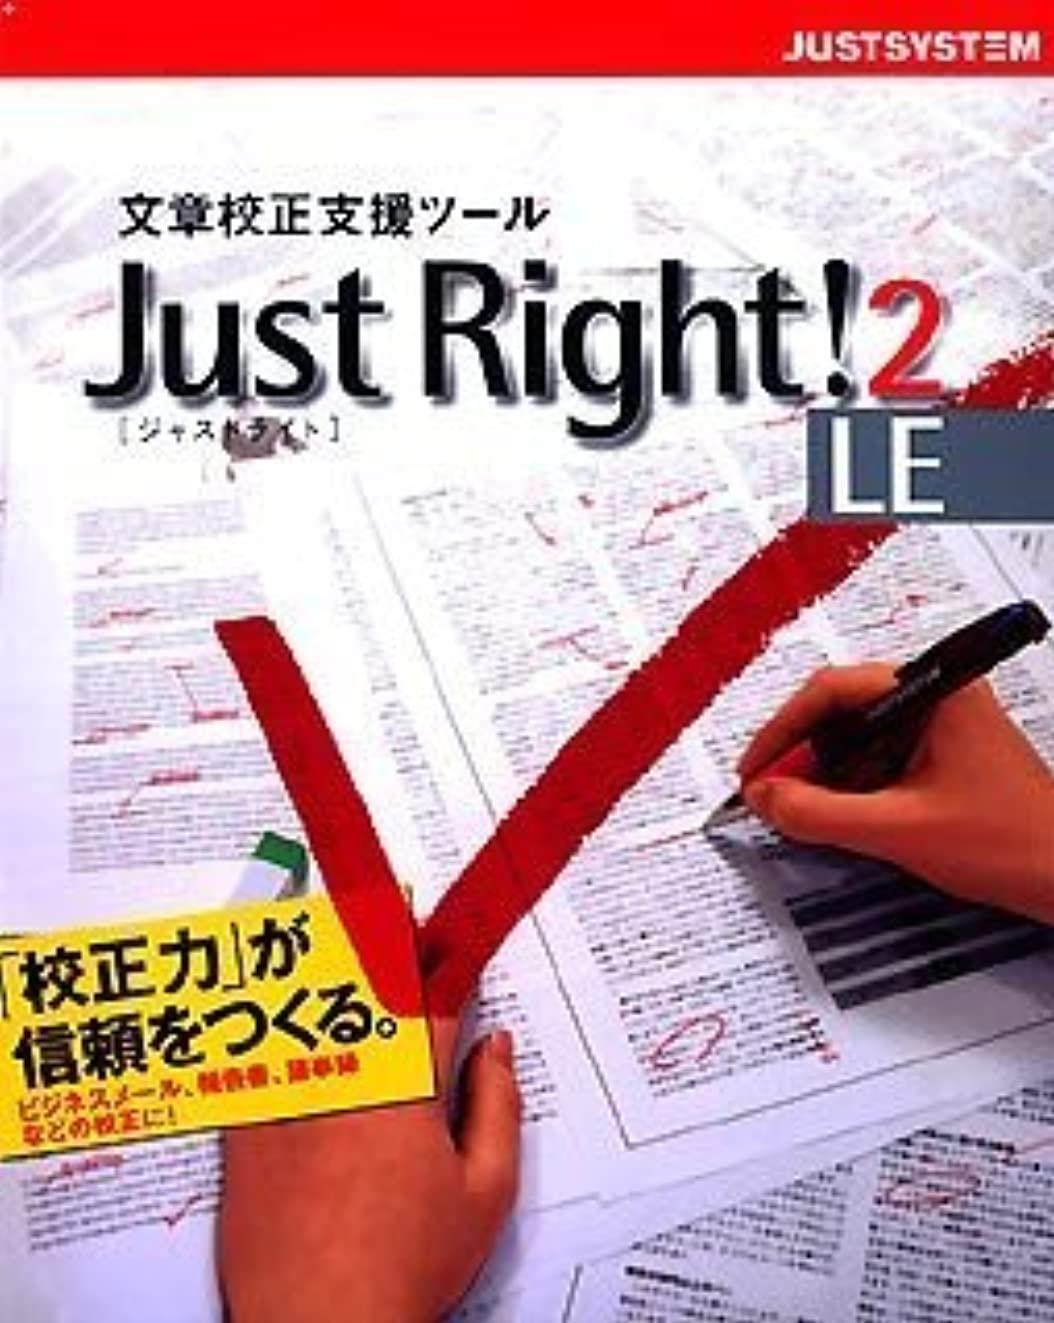 Just Right!2 LE for Windows CD-ROM